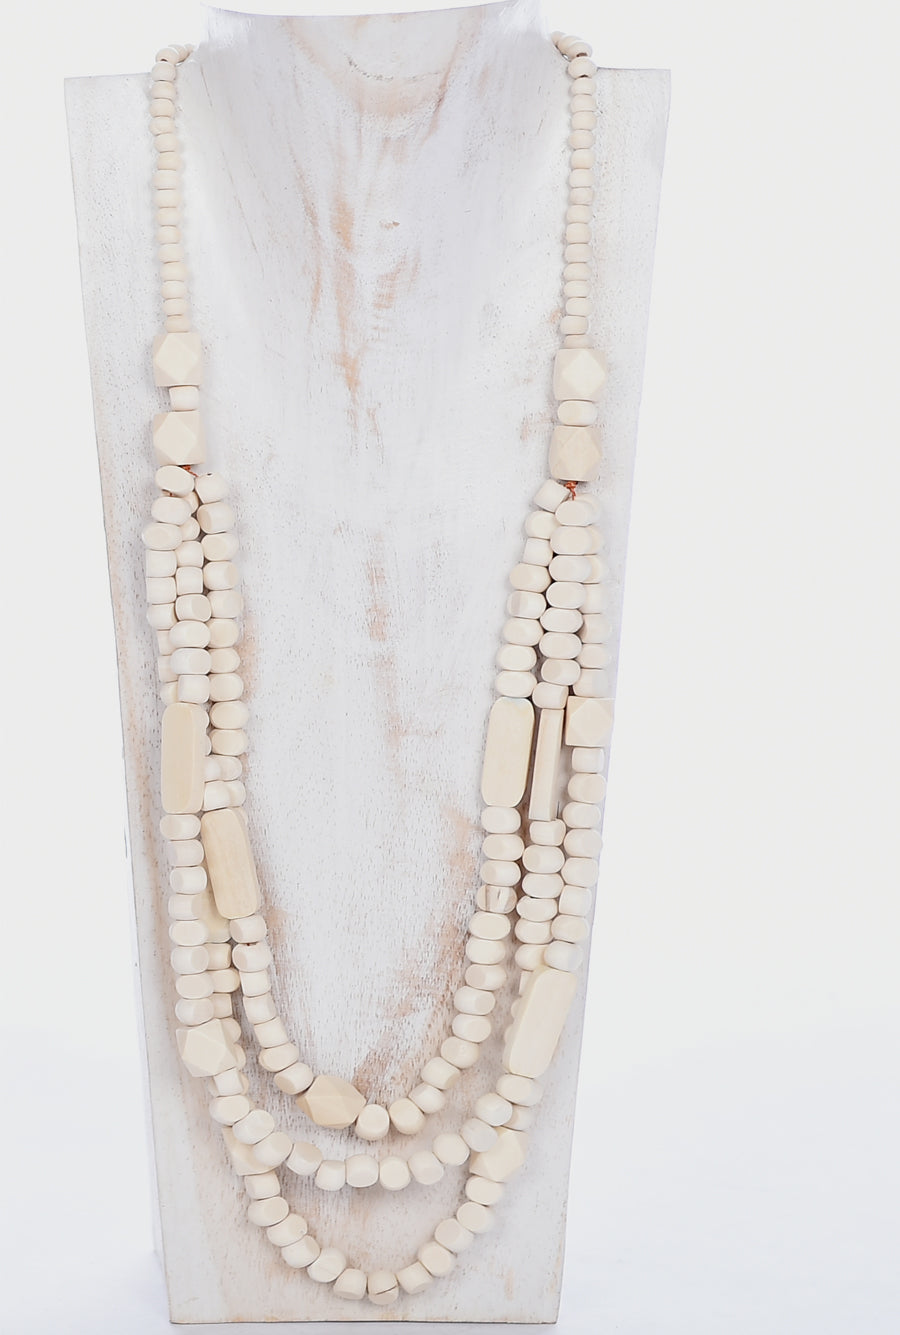 Necklace NBB041 - Neutral Natural Wood